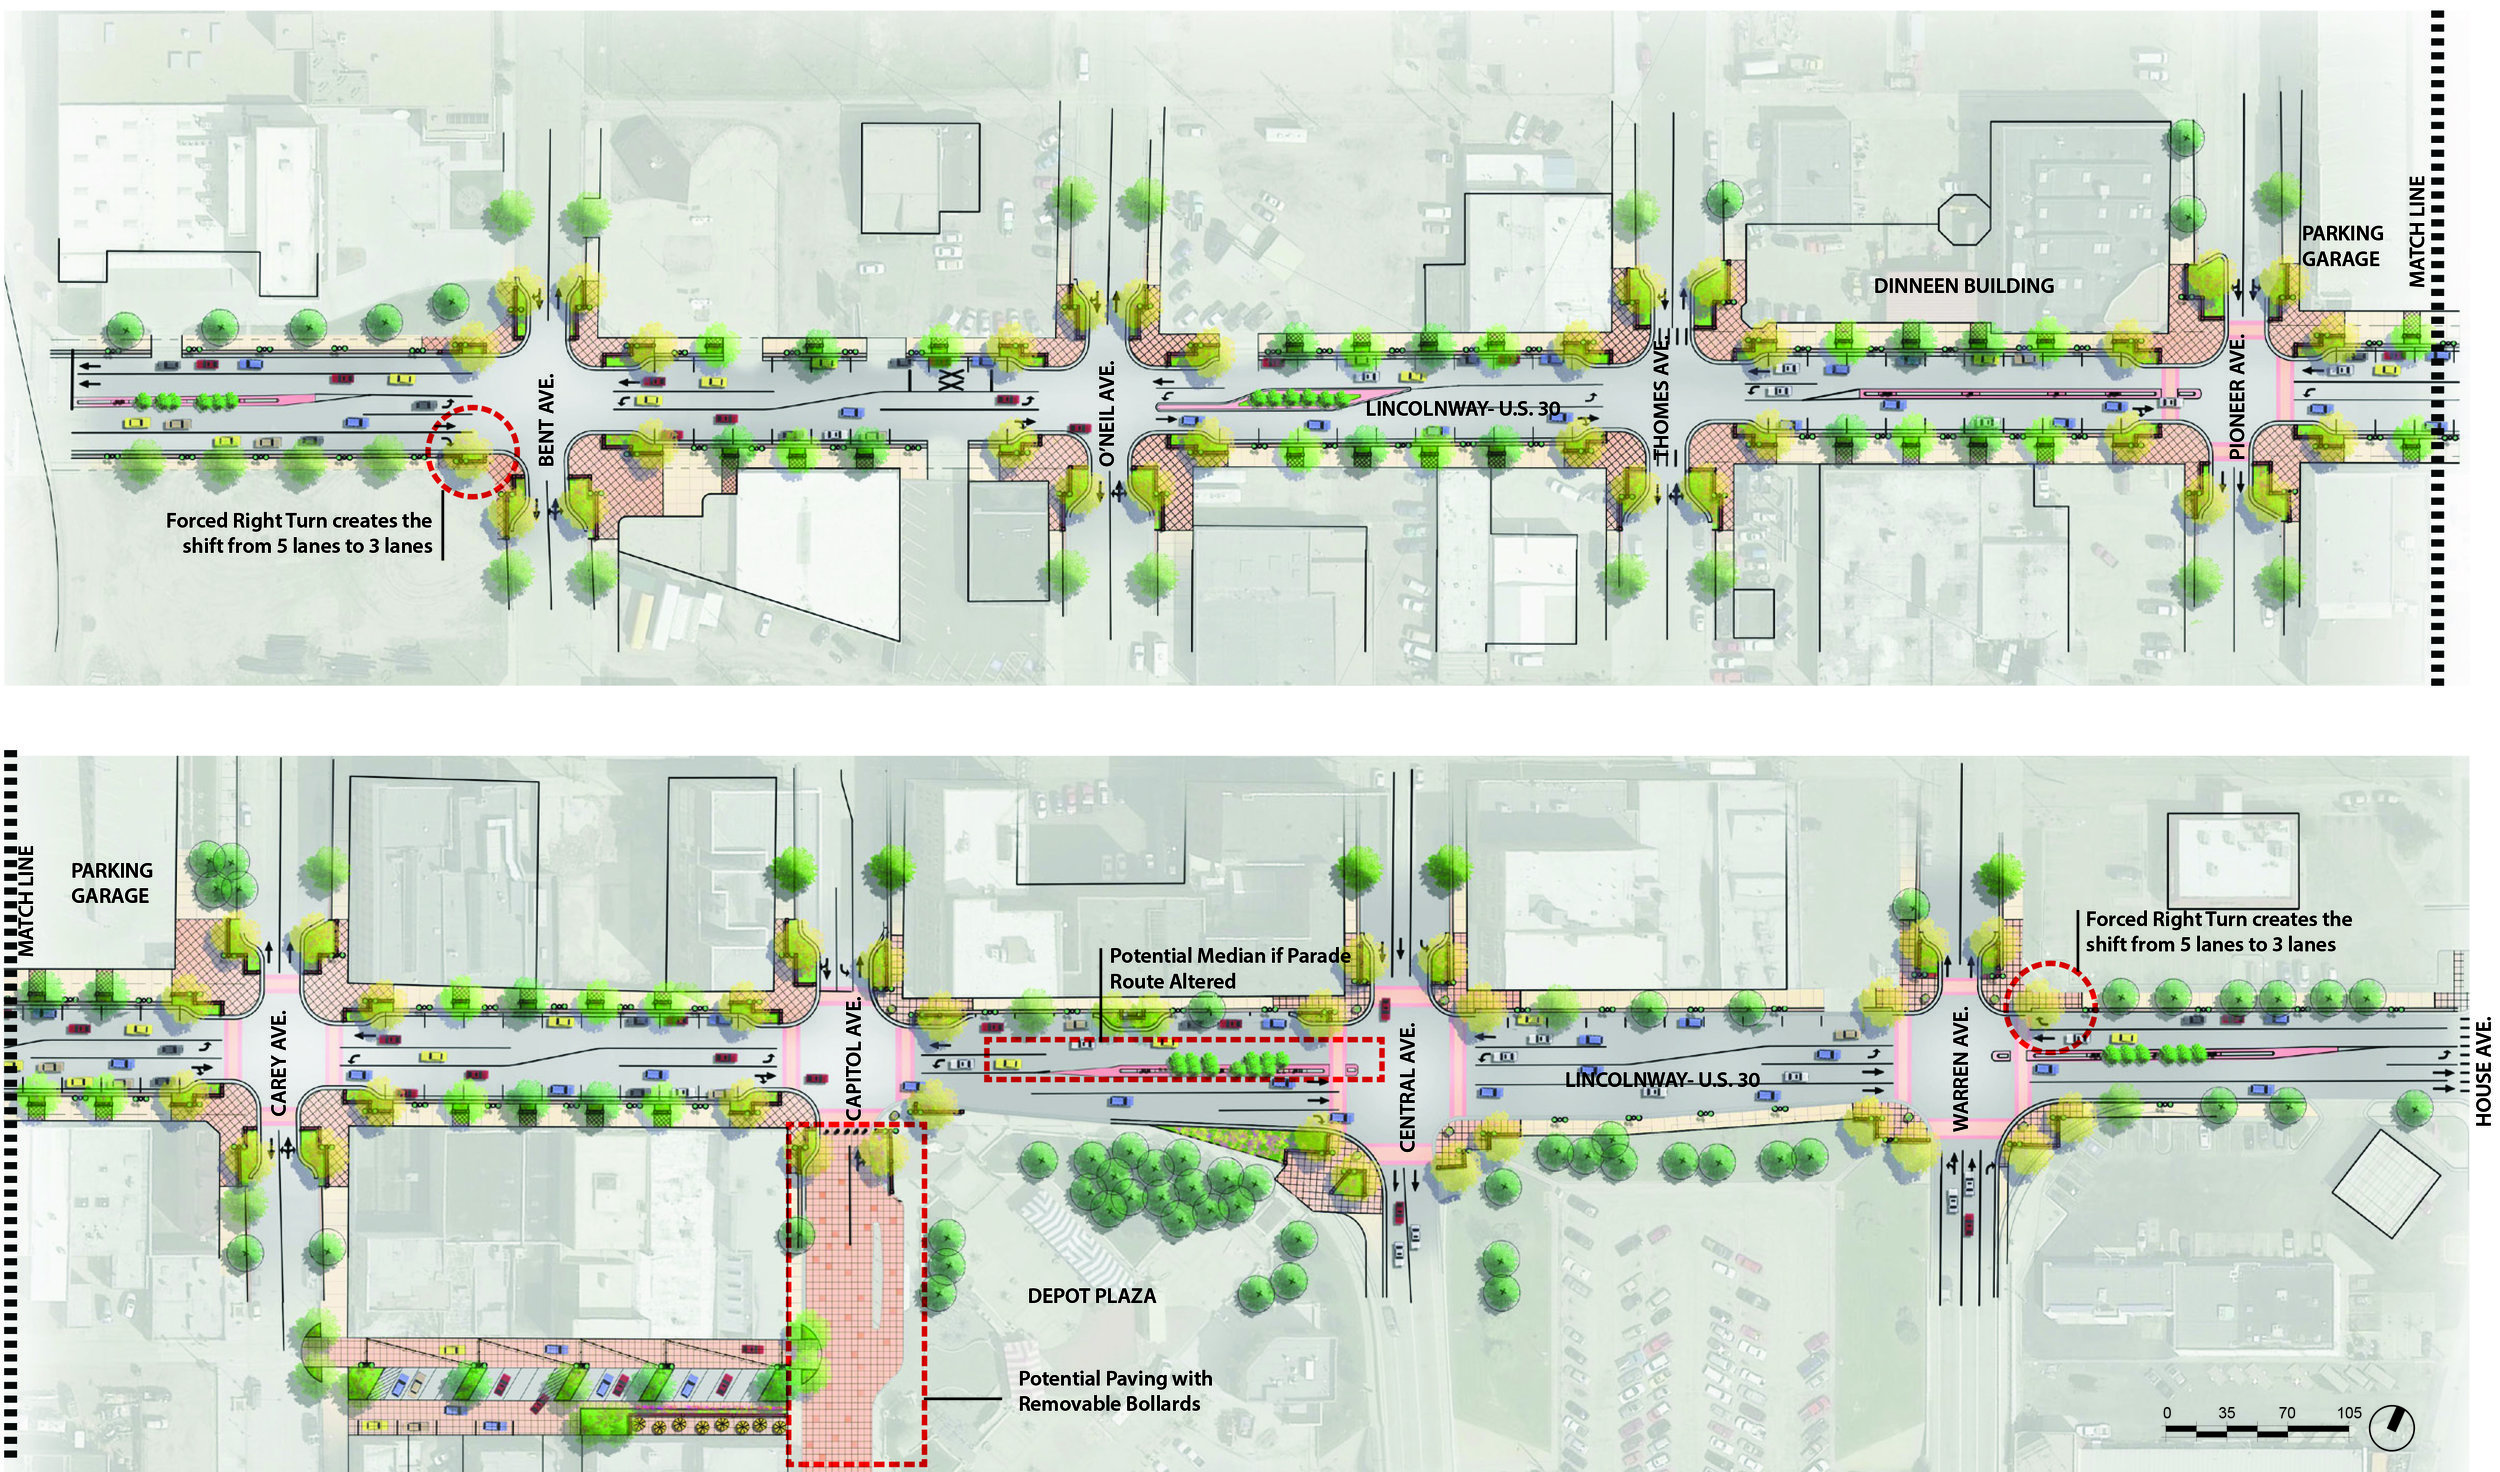 Proposed Road Reconfiguration Concept for Lincolnway. Graphic provided by City of Cheyenne.